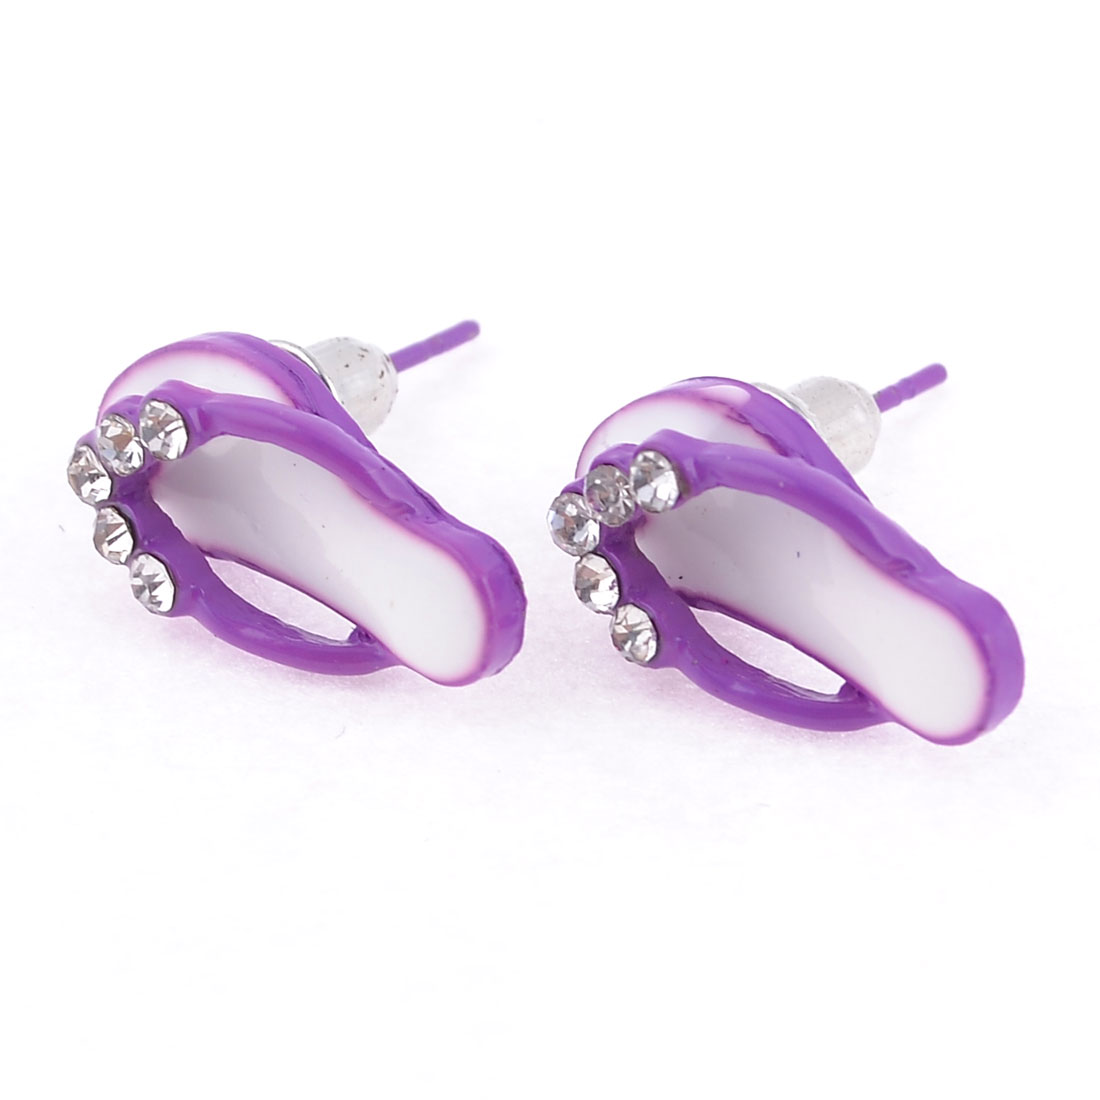 Women Slipper Design Metal Ear Stud Earrings Purple White Pair